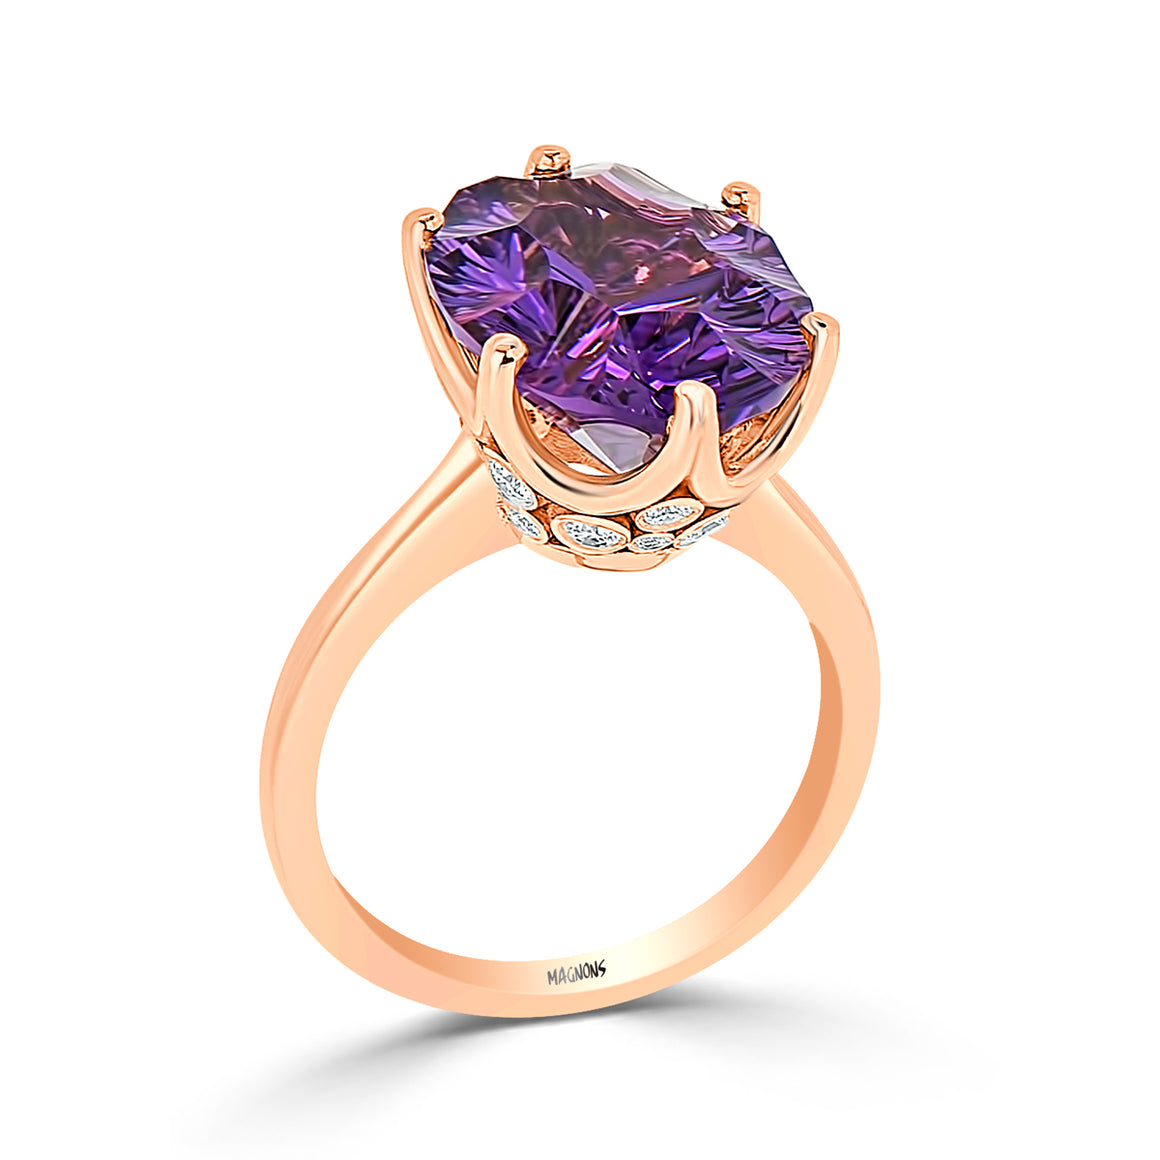 NATURAL DEEP PURPLE DIAMOND RING